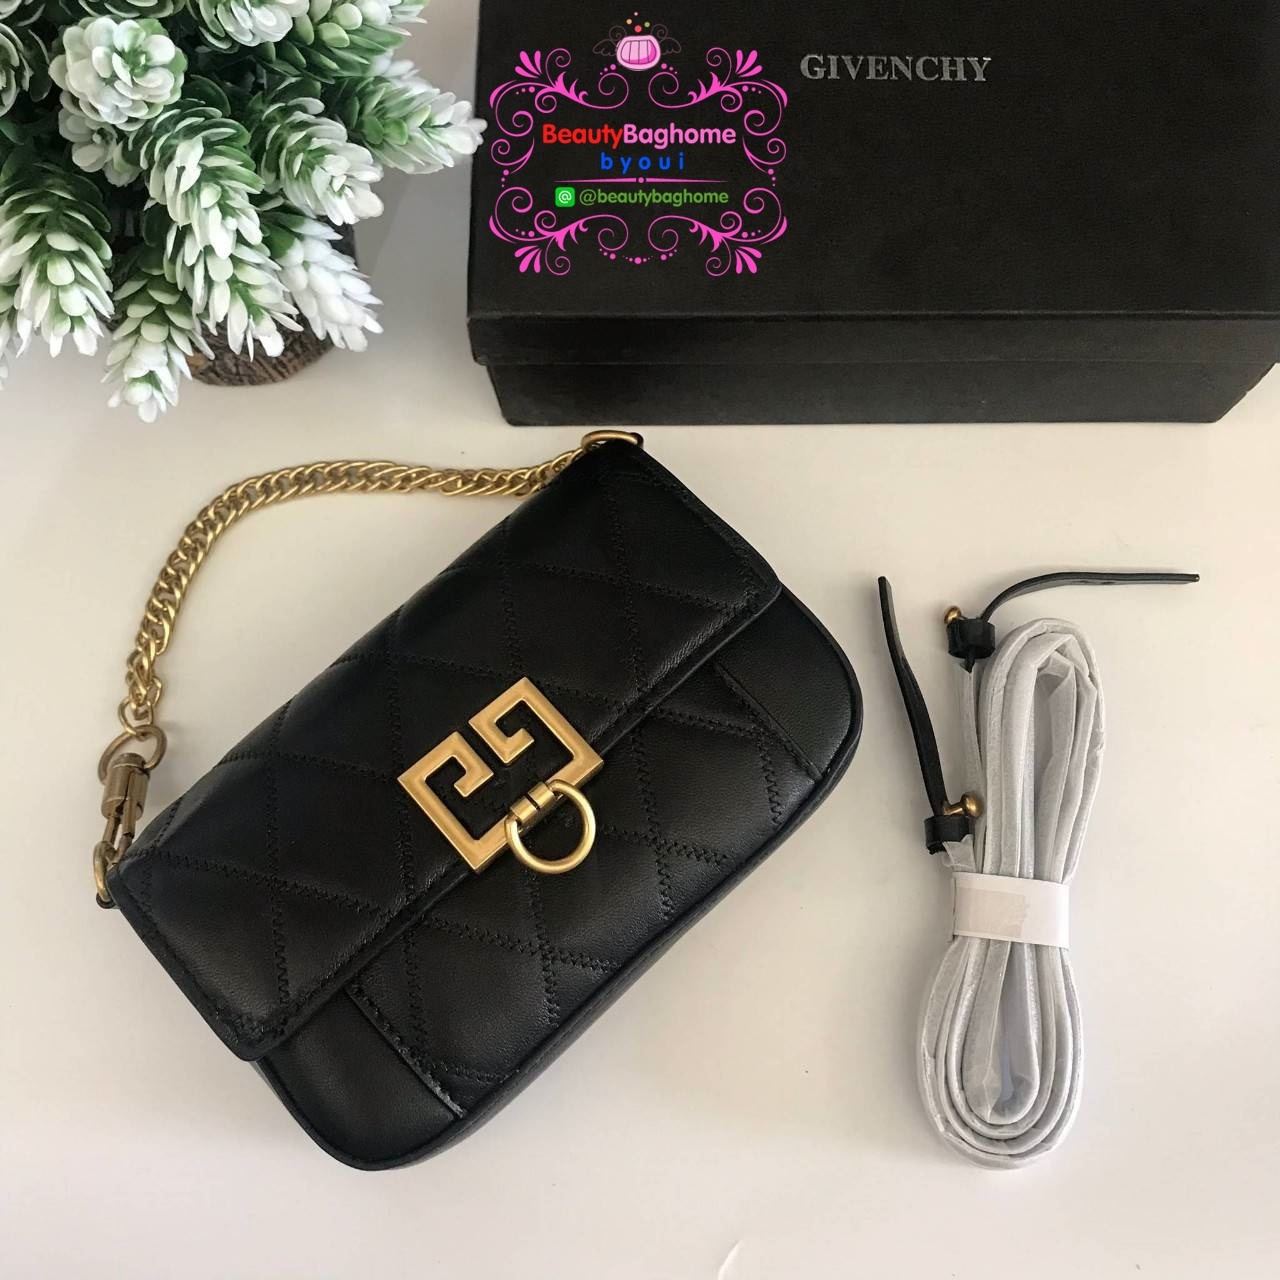 Givenchy mini bags new collection งานHiend1:1